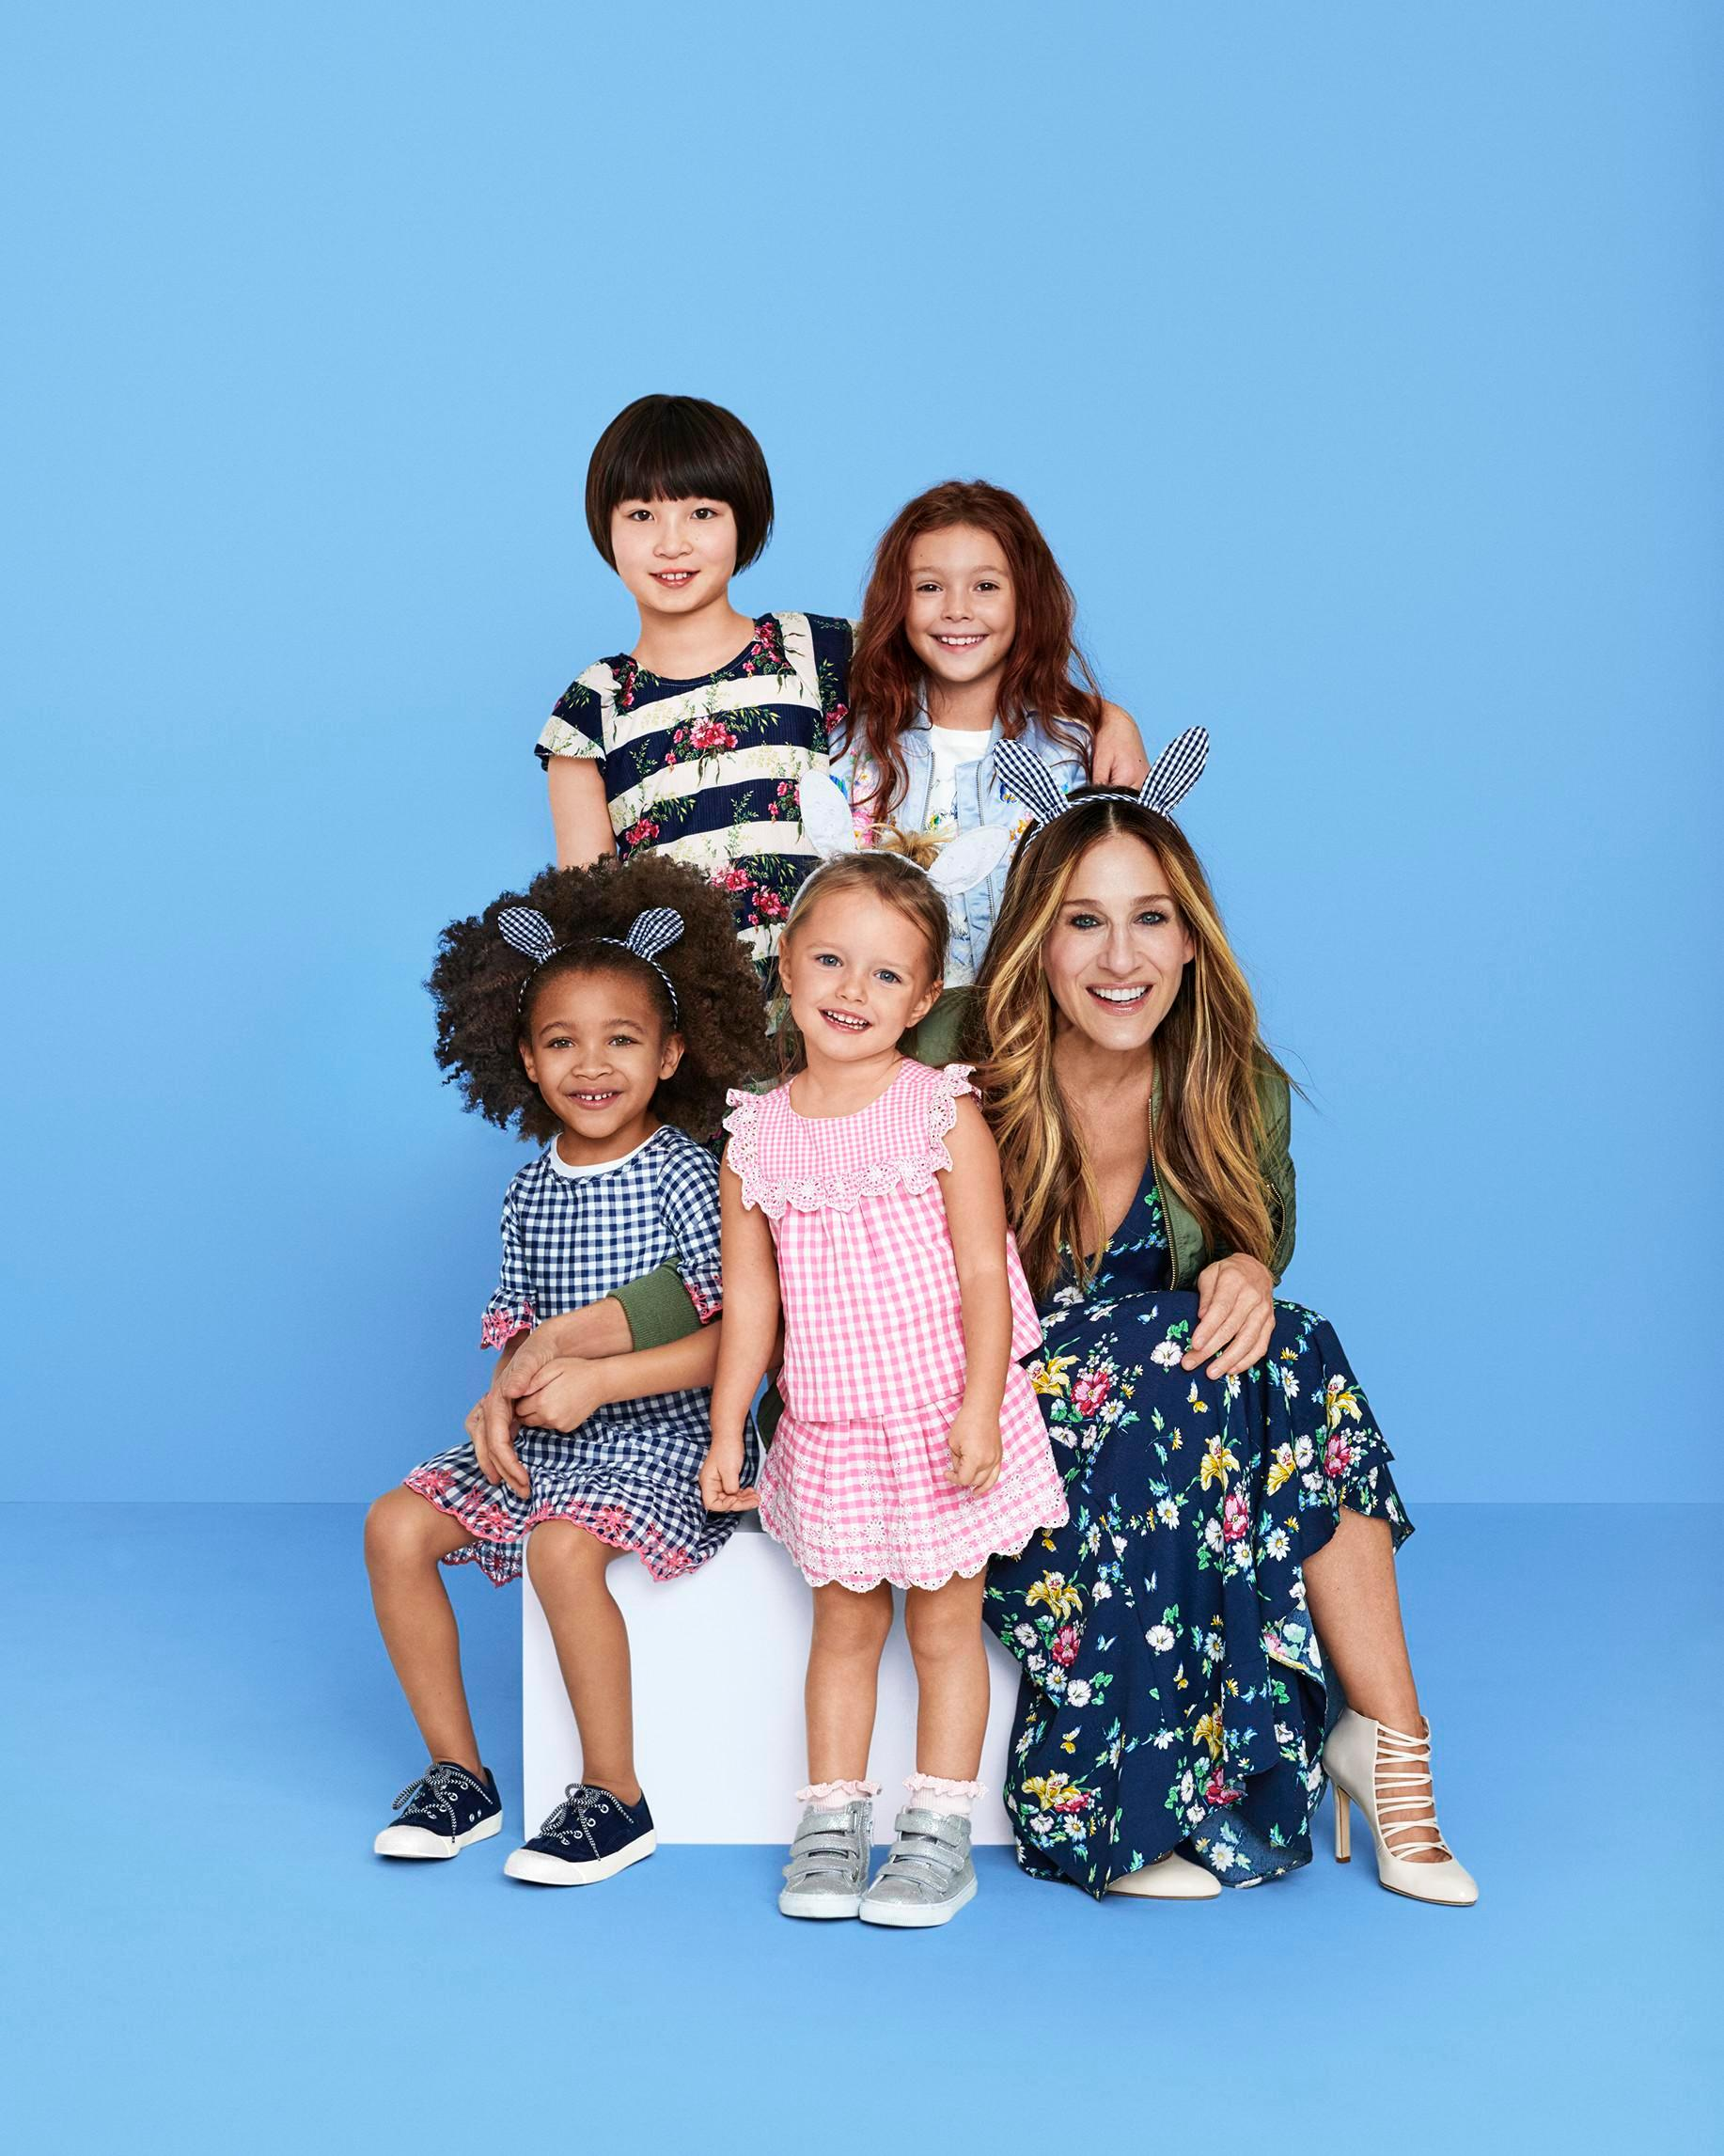 Sarah Jessica Parker and GAP launch an exclusive spring-themed kidswear collection with prices starting from £10.95